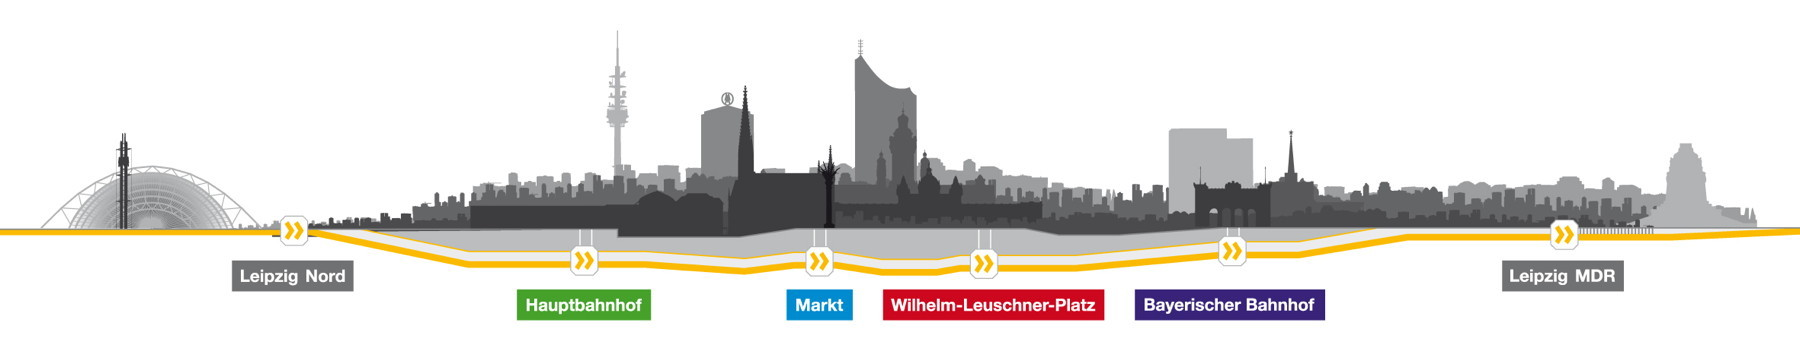 Three kilometers in length, the city tunnel connects Leipzig's two mayor terminals, Hauptbahnhof and Bayrischer Bahnhof, in a straight line under the historic city centre. (Infographic © Freistaat Sachsen)